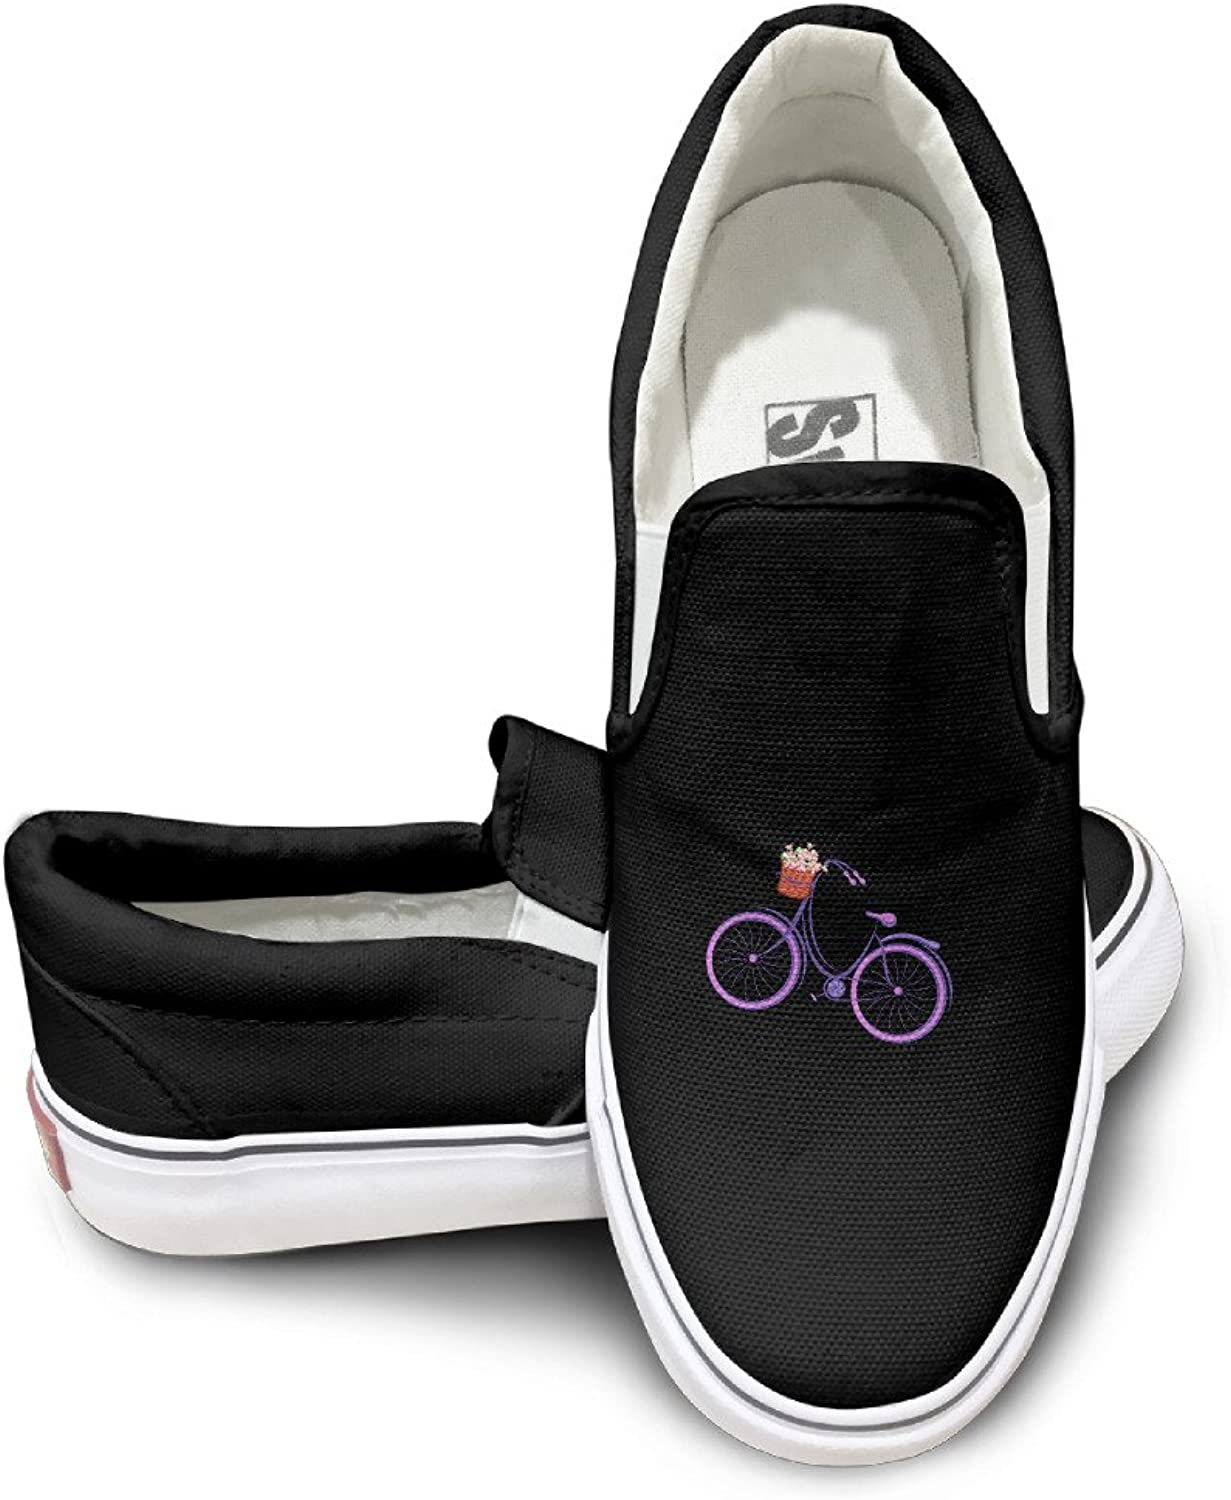 Alexander Maia Purple Bicycle Classical Unisex Wonderful Low-top Canvas shoes White and Black colors with Heel Height 3CM